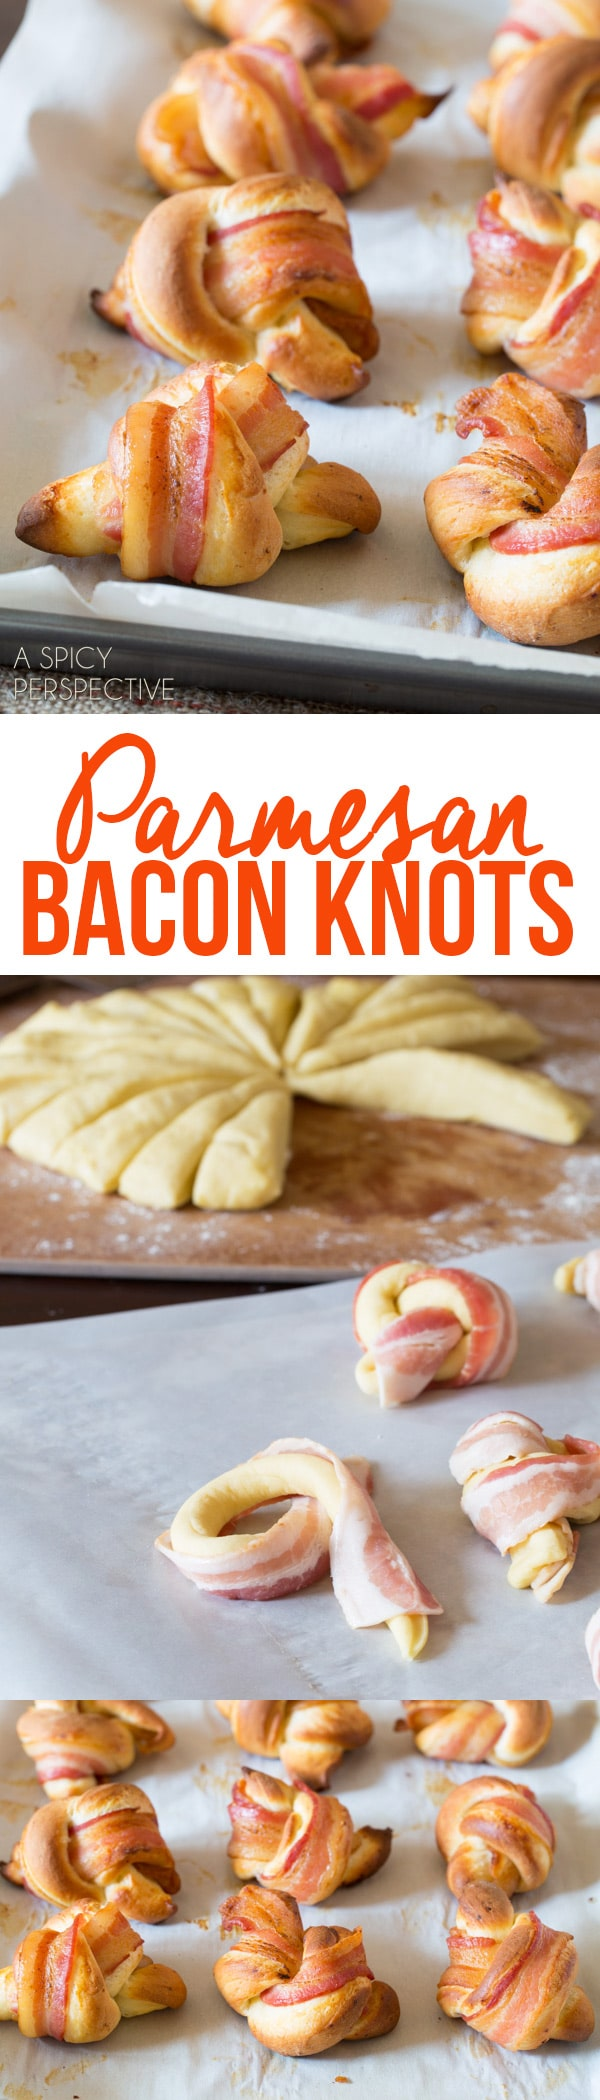 Parmesan Bacon Knots Recipe